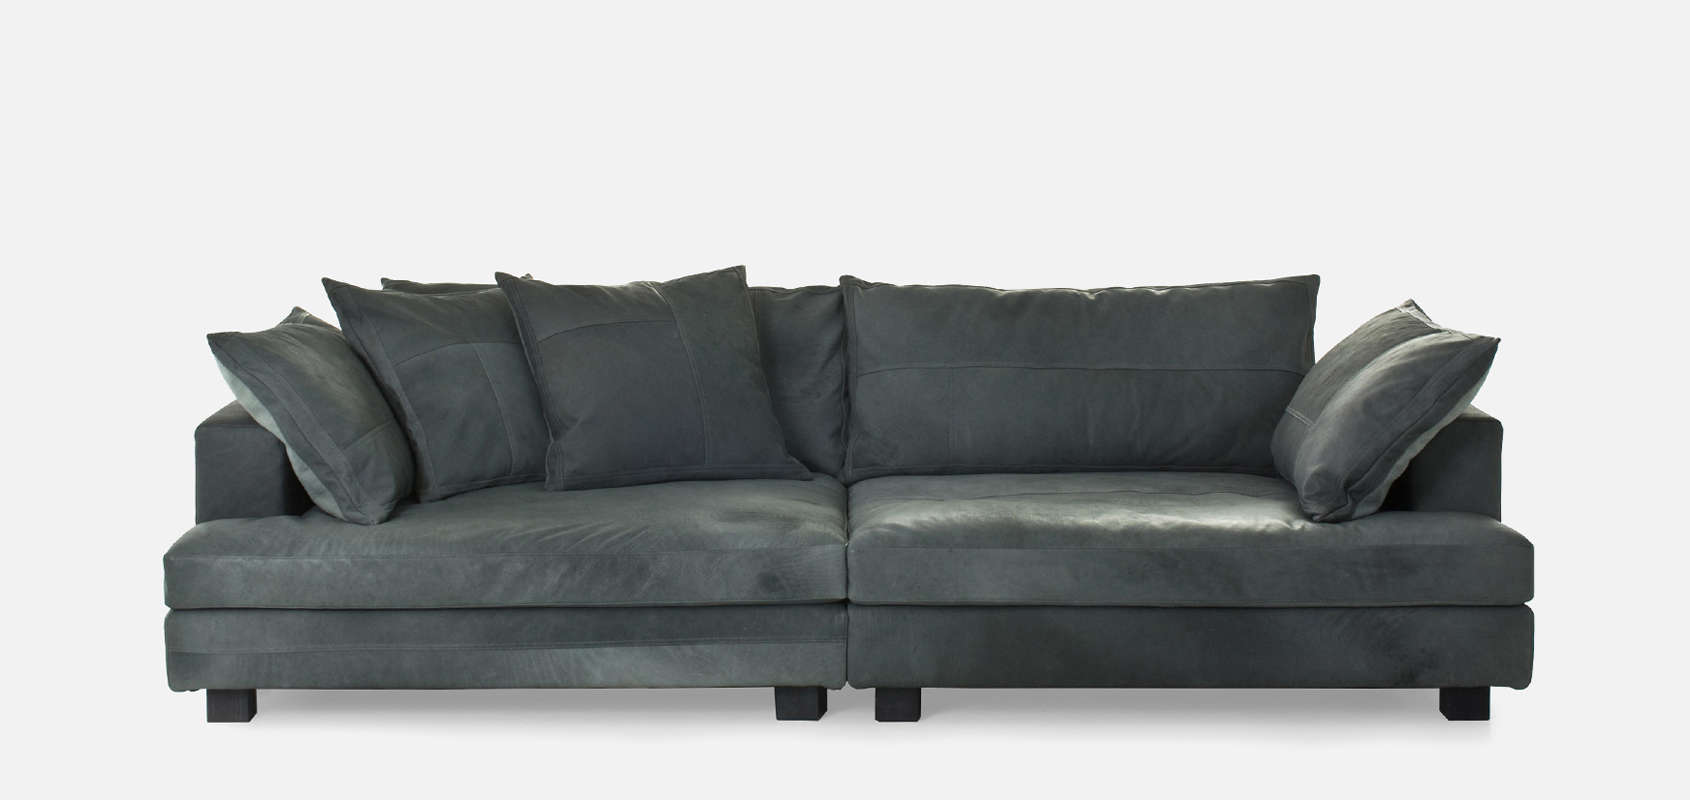 Overdyed Armchair By Diesel Creative Team For Diesel For